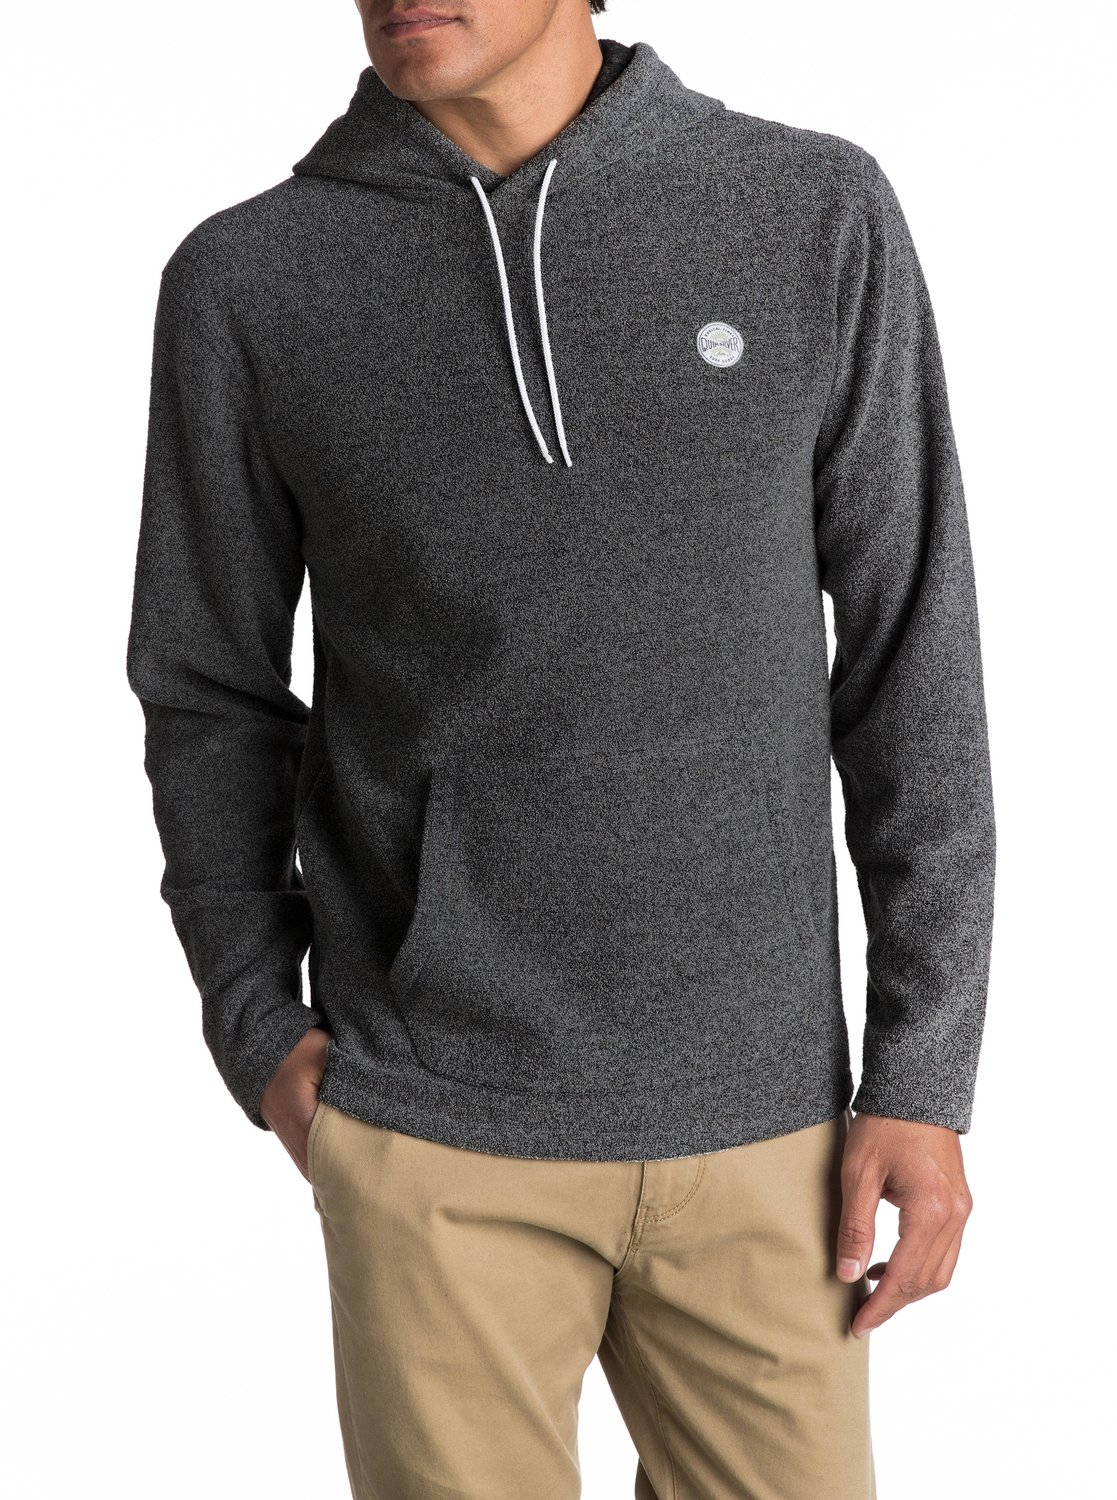 Capuche Quiksilver Noir Surf Homme Ultra doux Sweat À After Pour tz8wqff